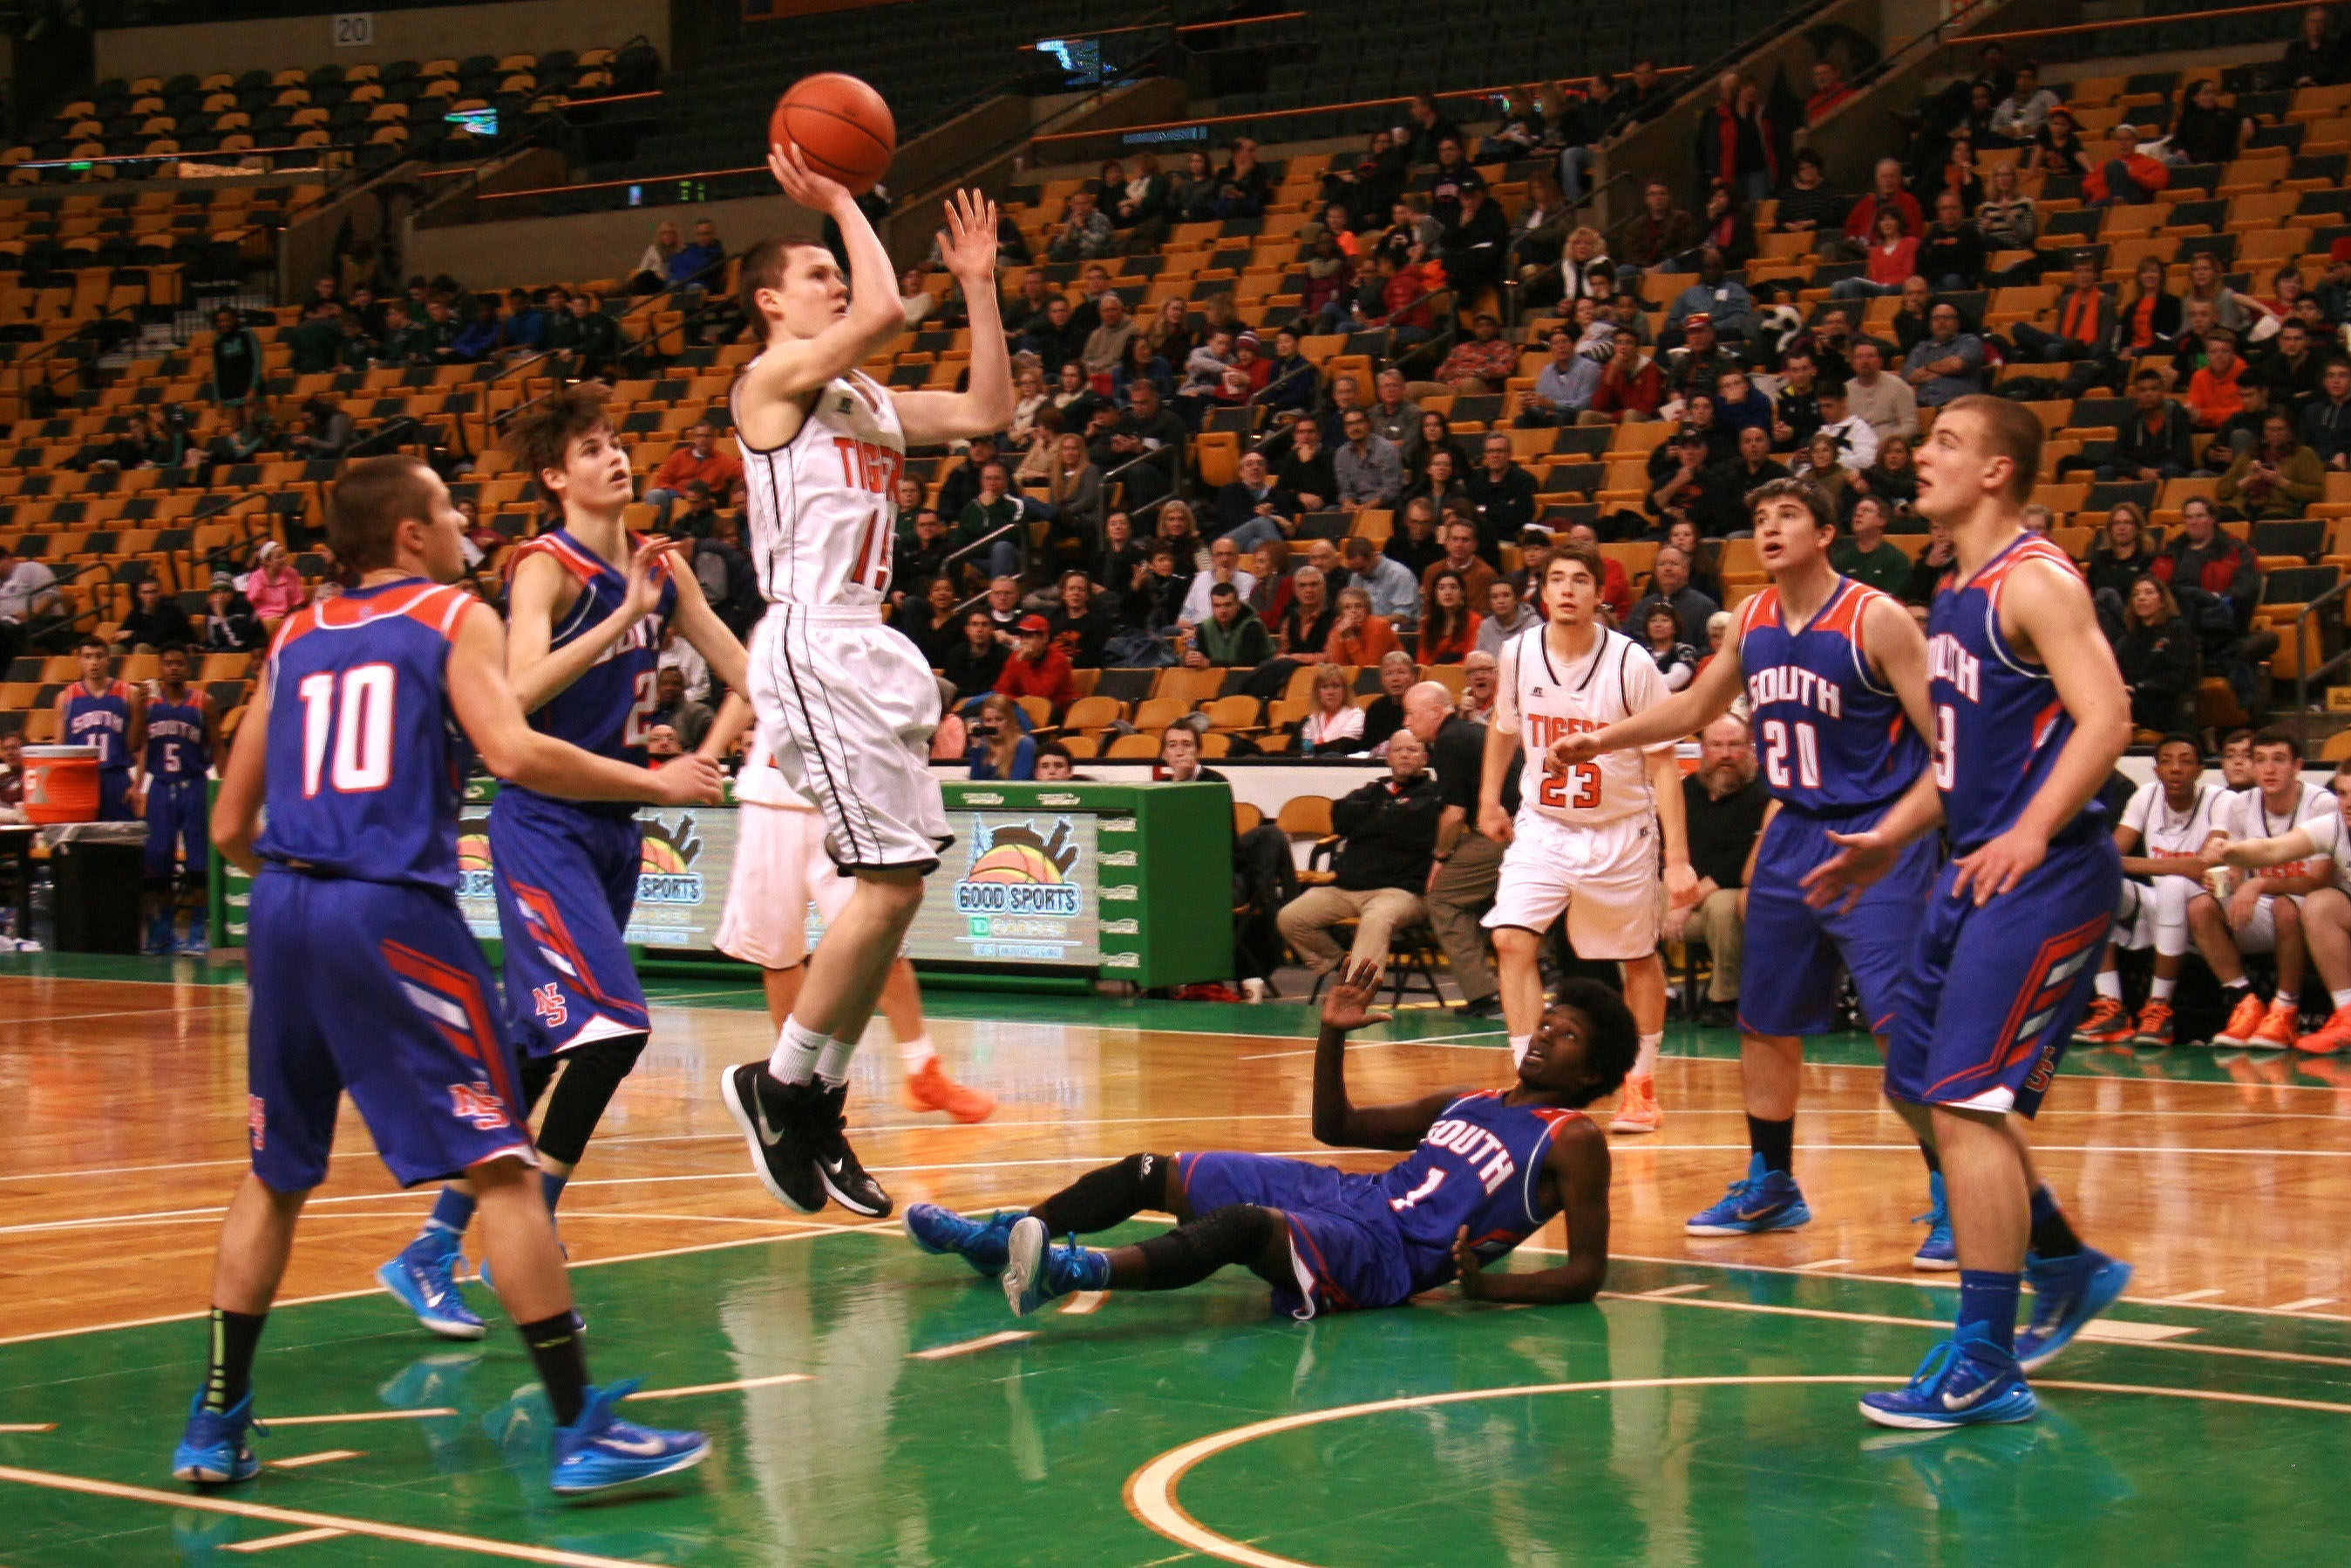 Freshman Ethan Wright drives for a basket last Saturday at the TD Garden in a 61-46 win over South.